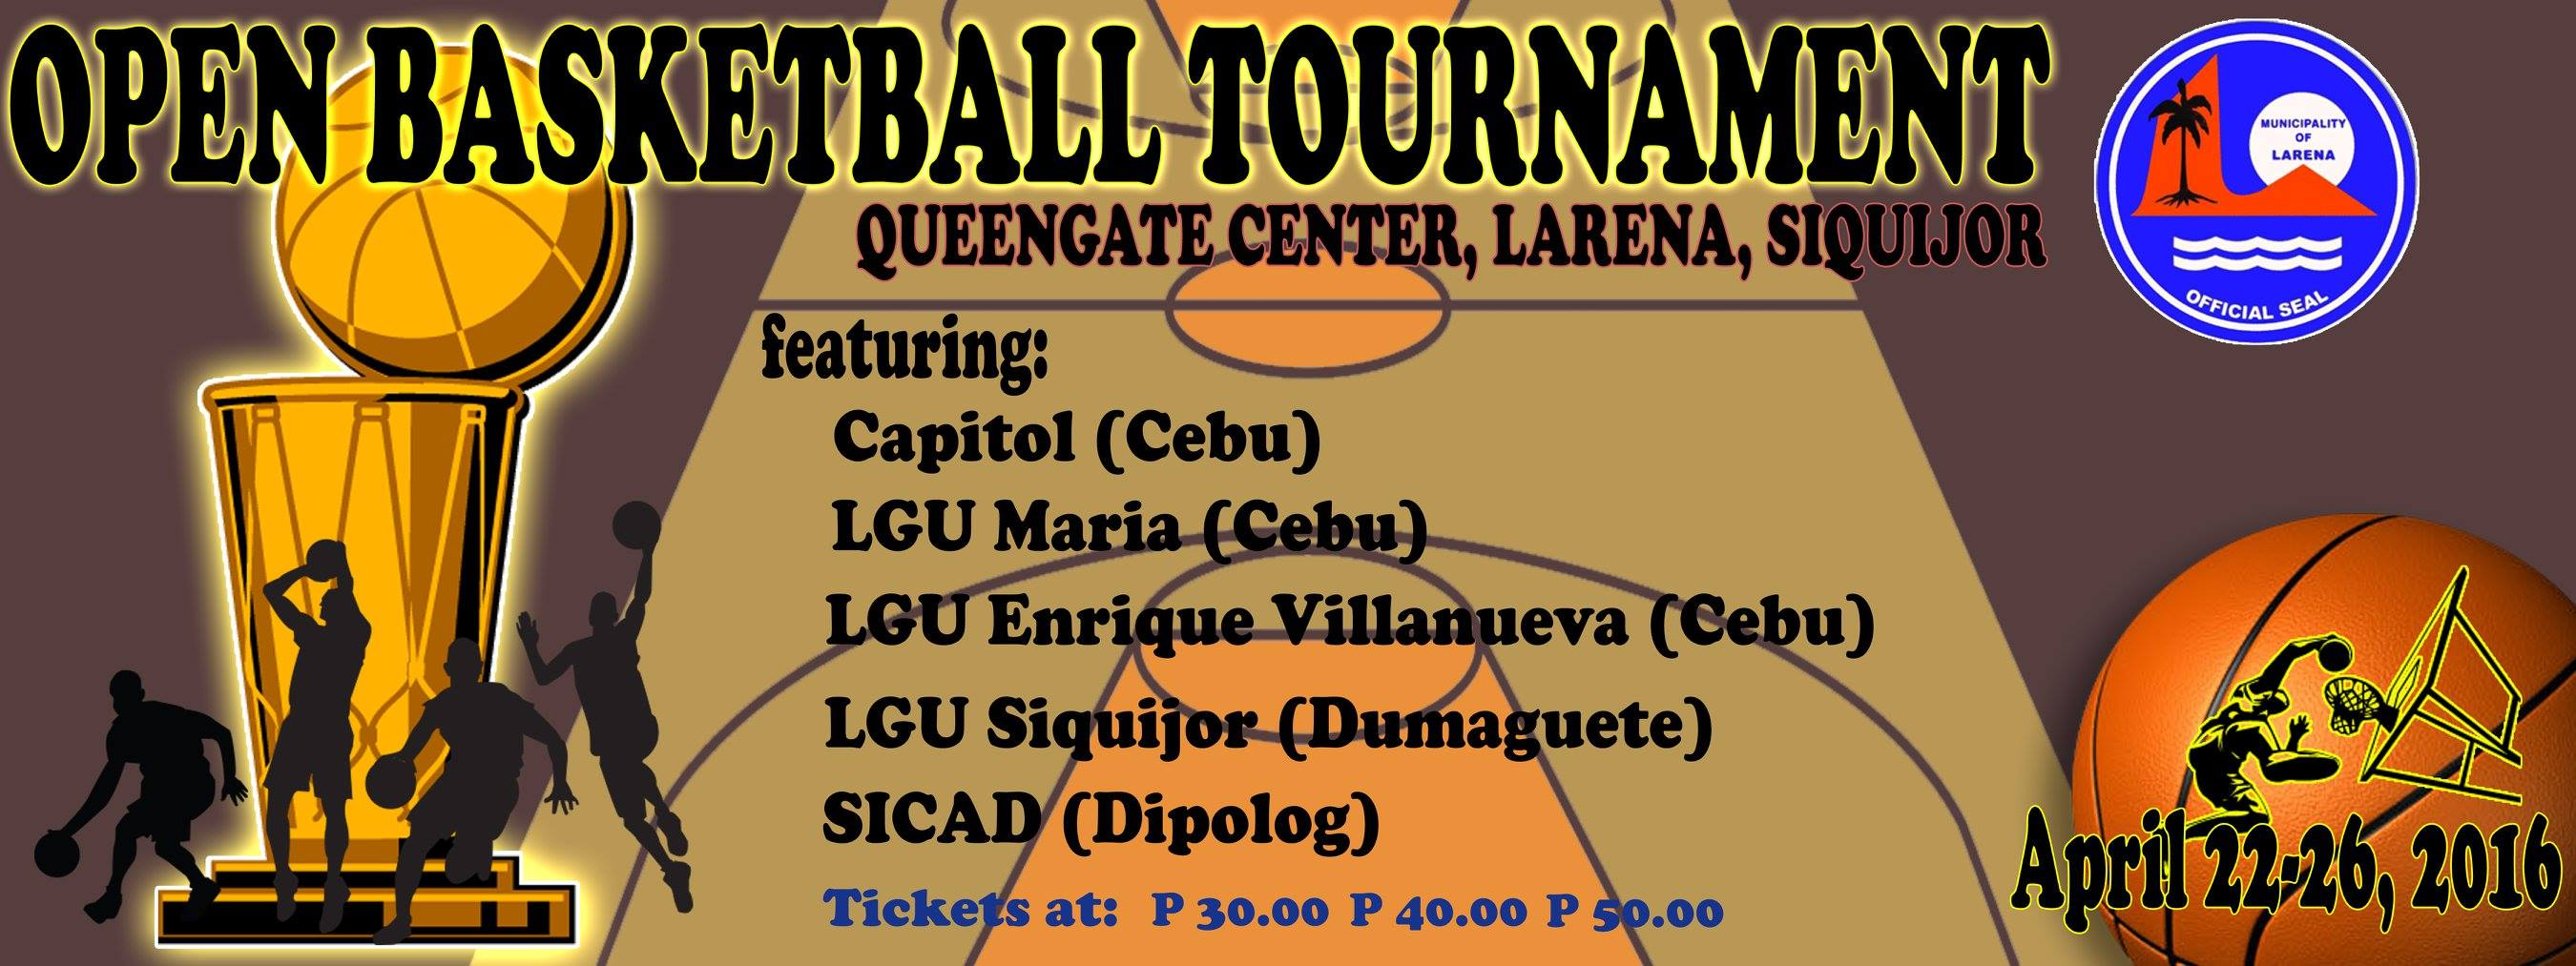 open-basketball-tournament